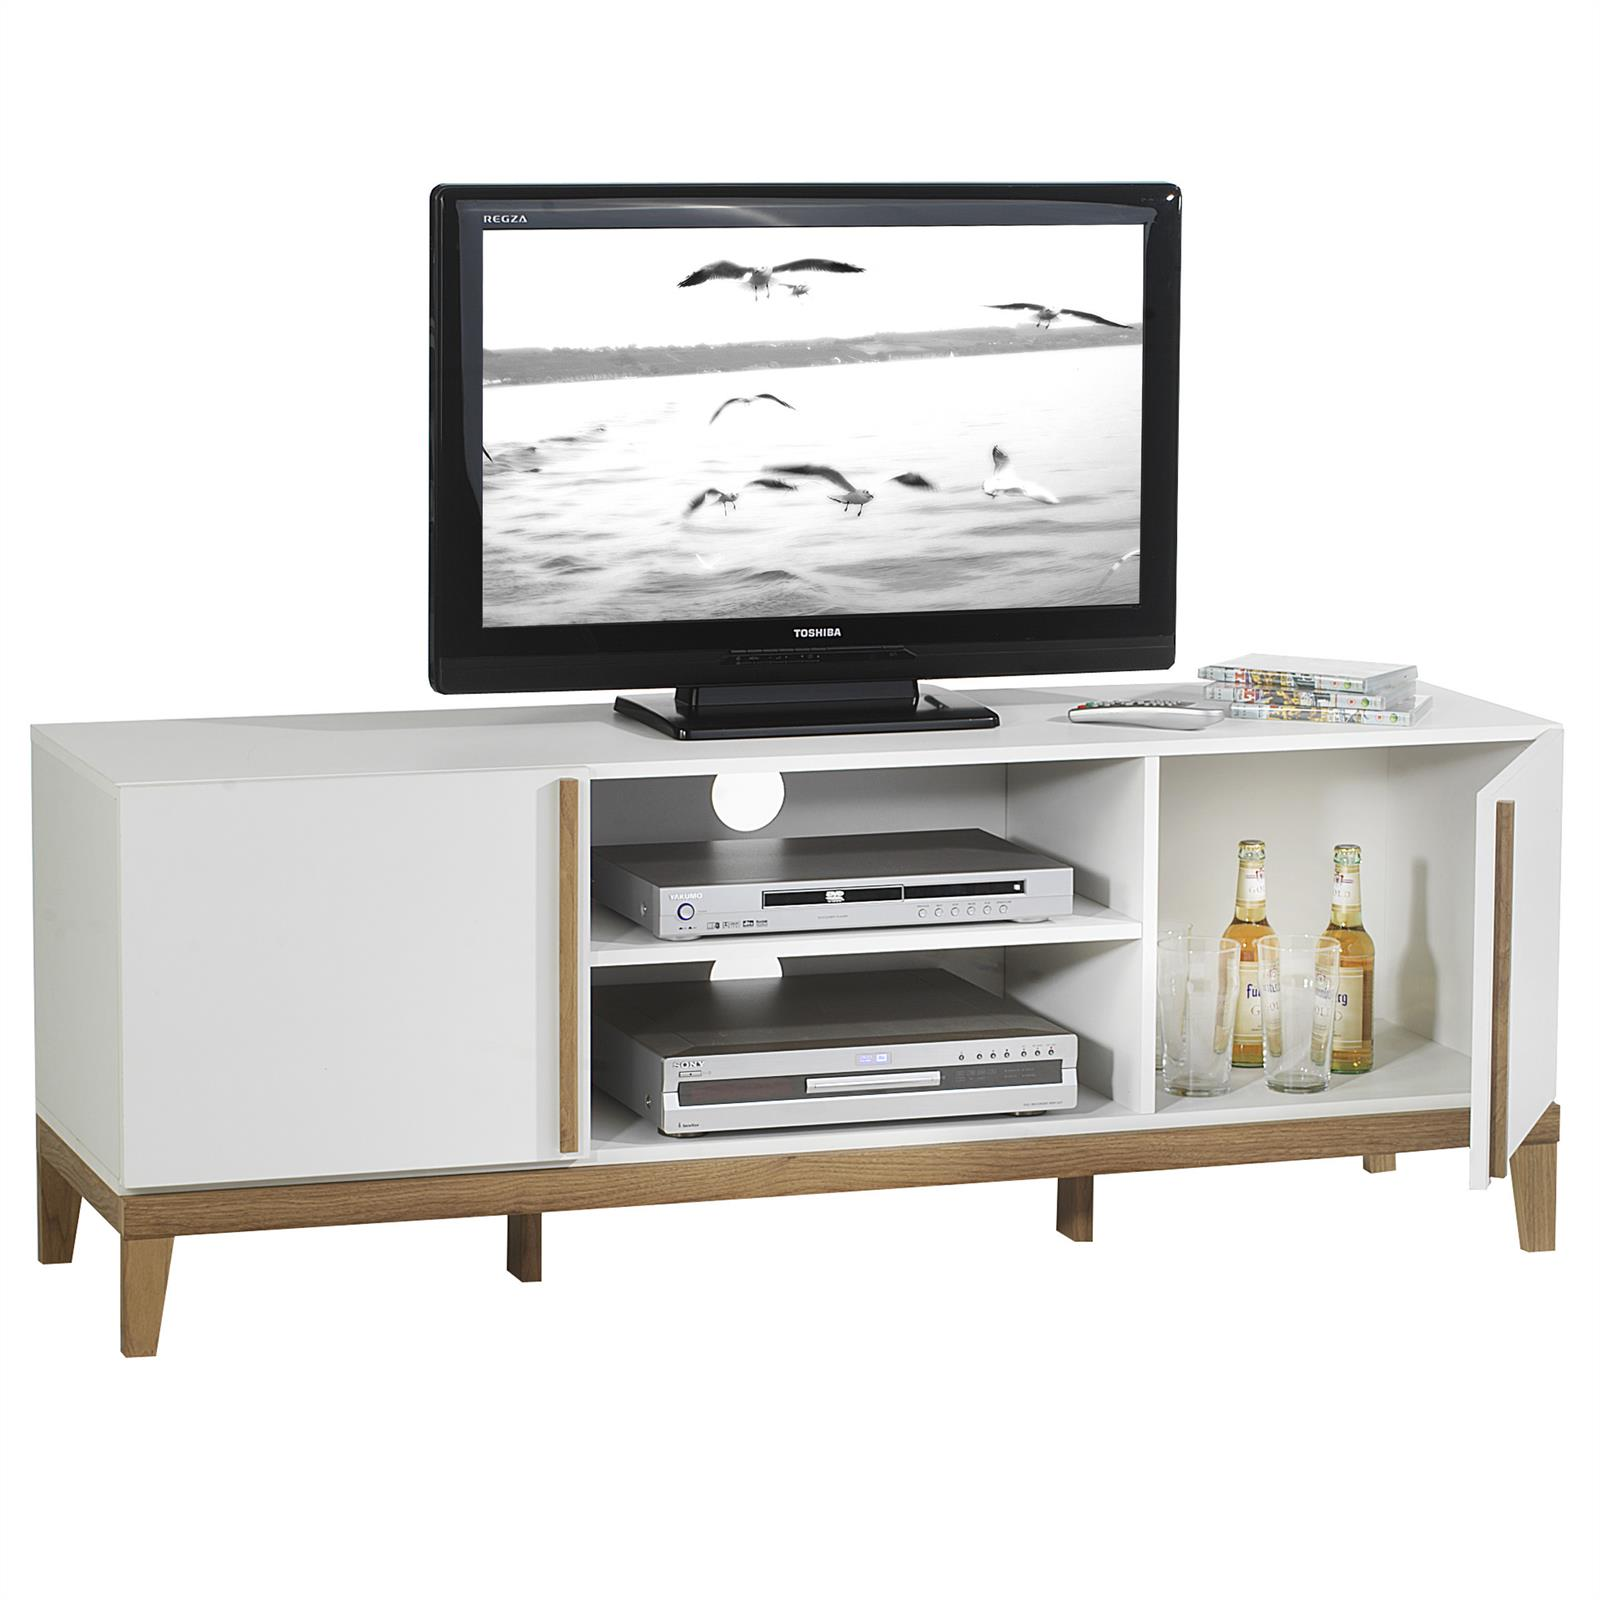 meuble tv riga 2 niches 2 portes blanc et bois mobil. Black Bedroom Furniture Sets. Home Design Ideas